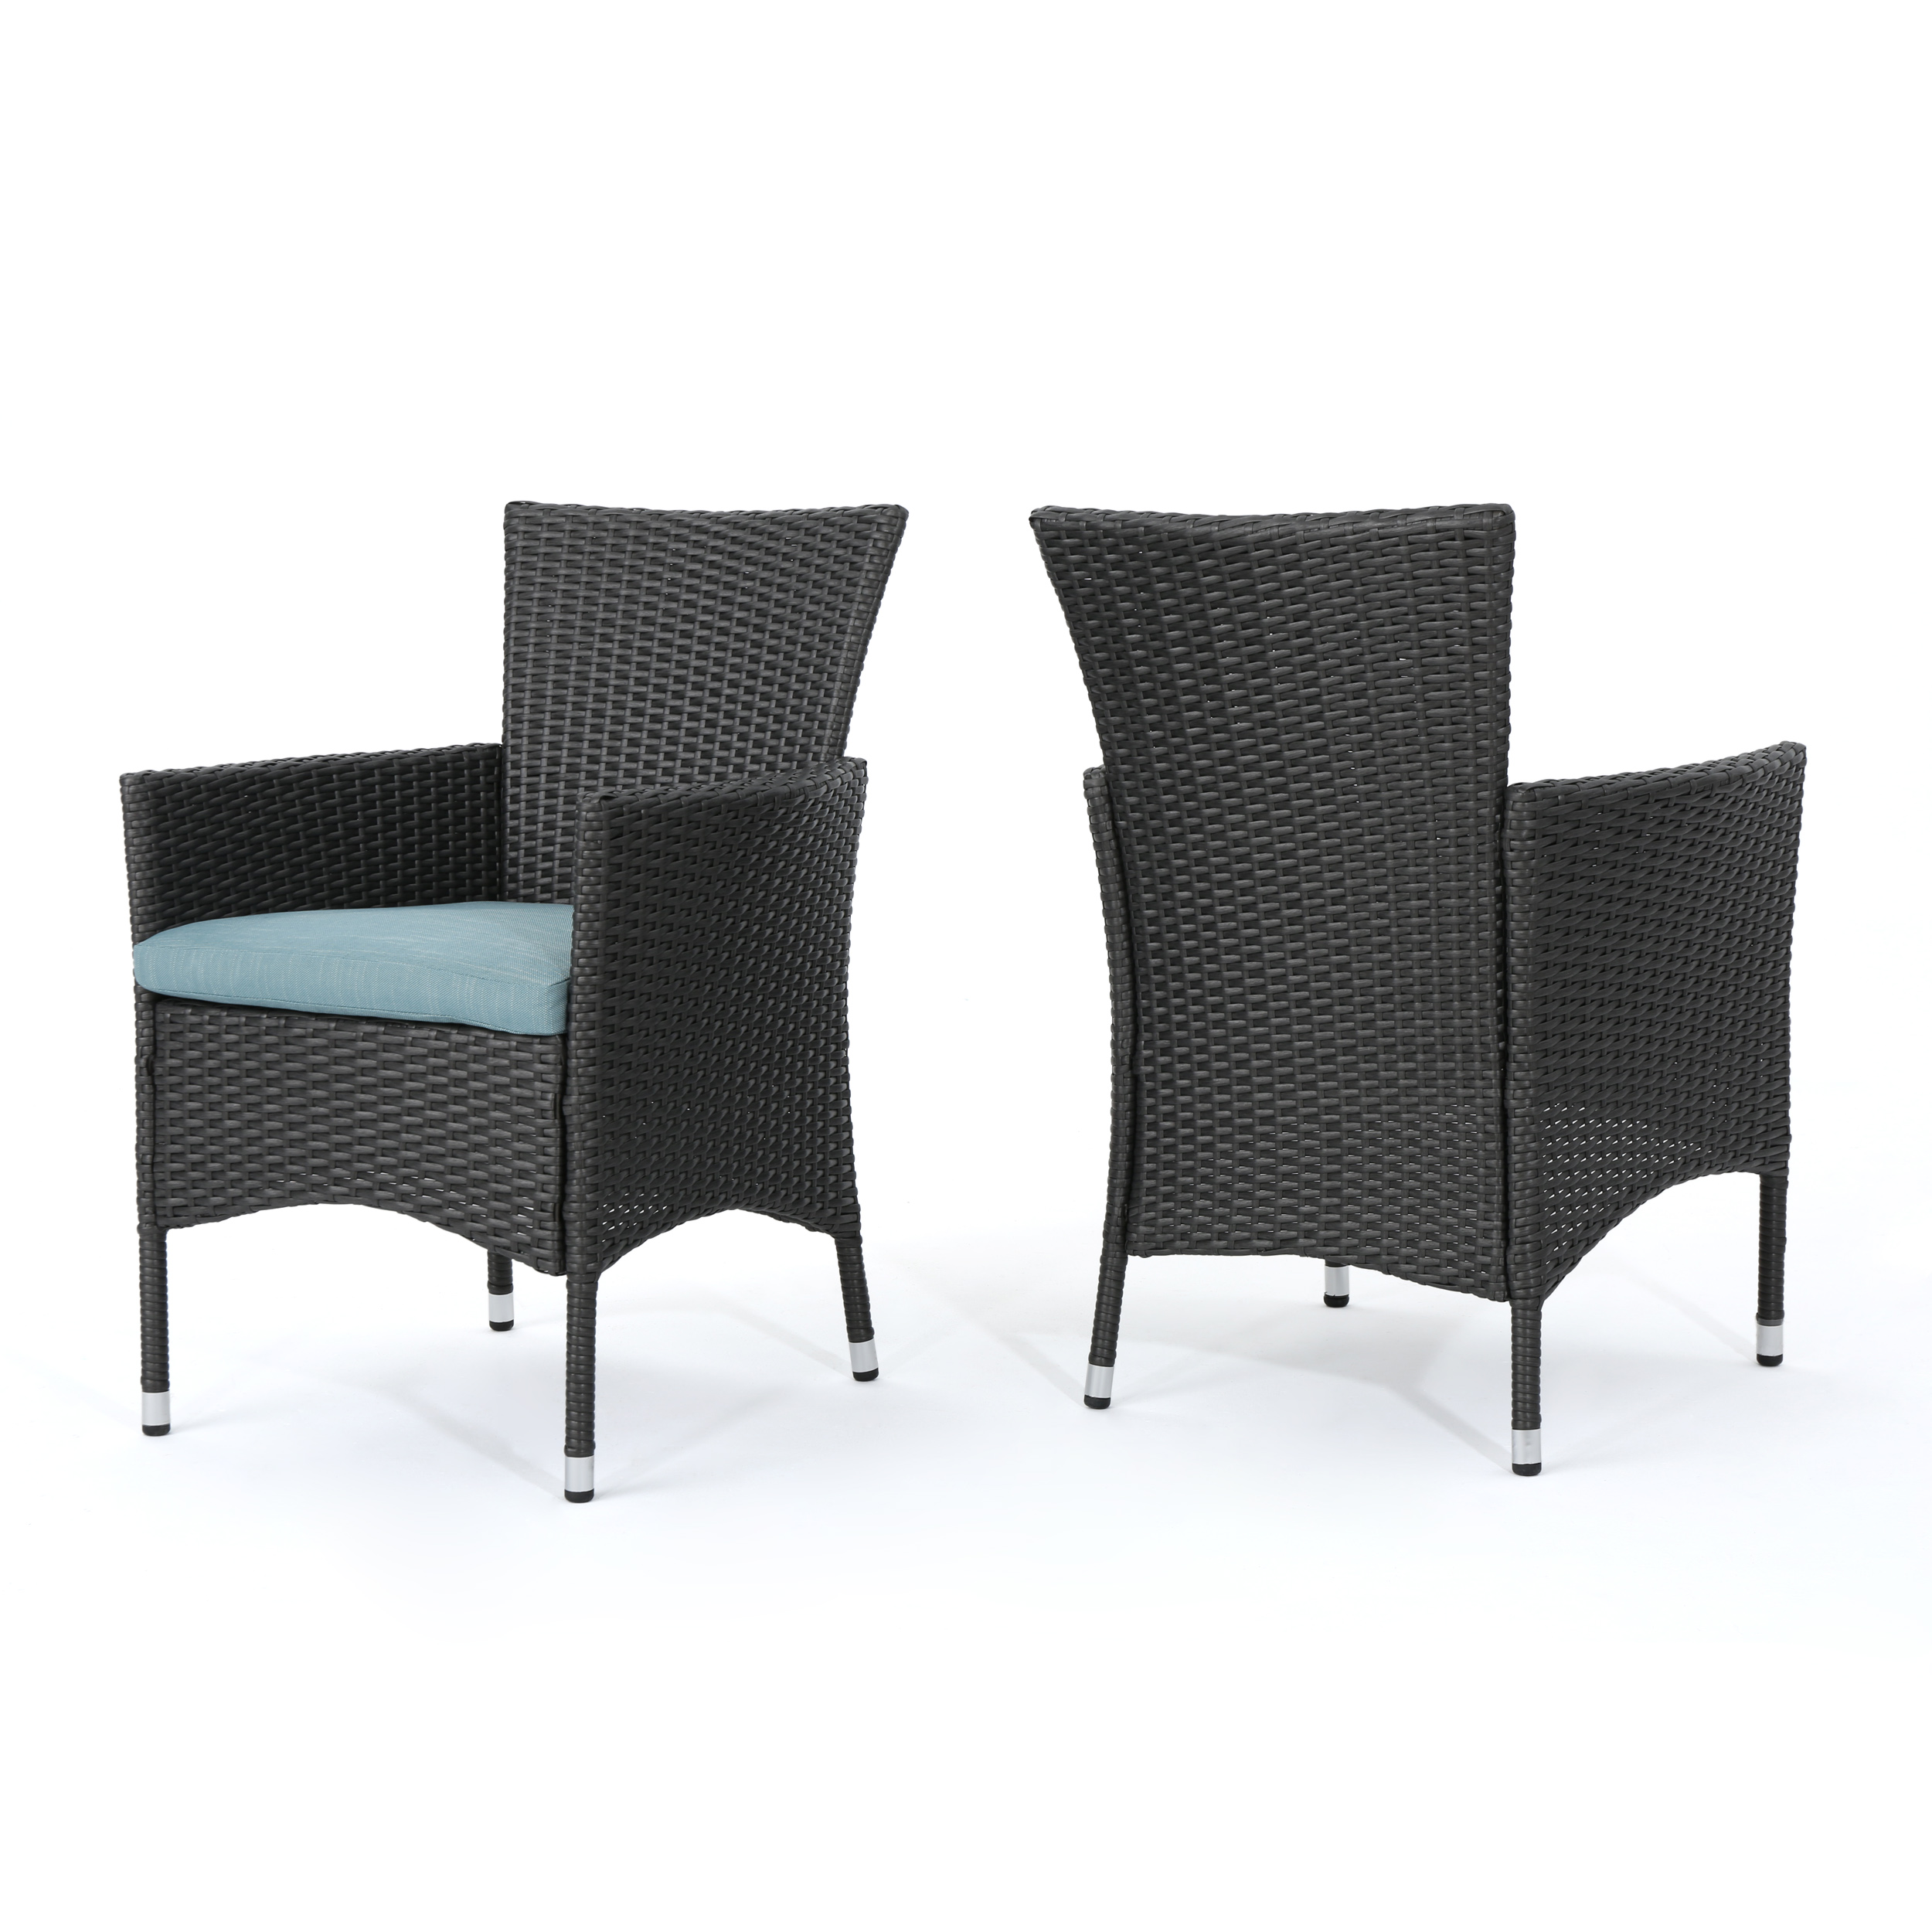 Miya Outdoor Grey Wicker Dining Chairs with Water Resistant Cushions, Set of 2, Teal